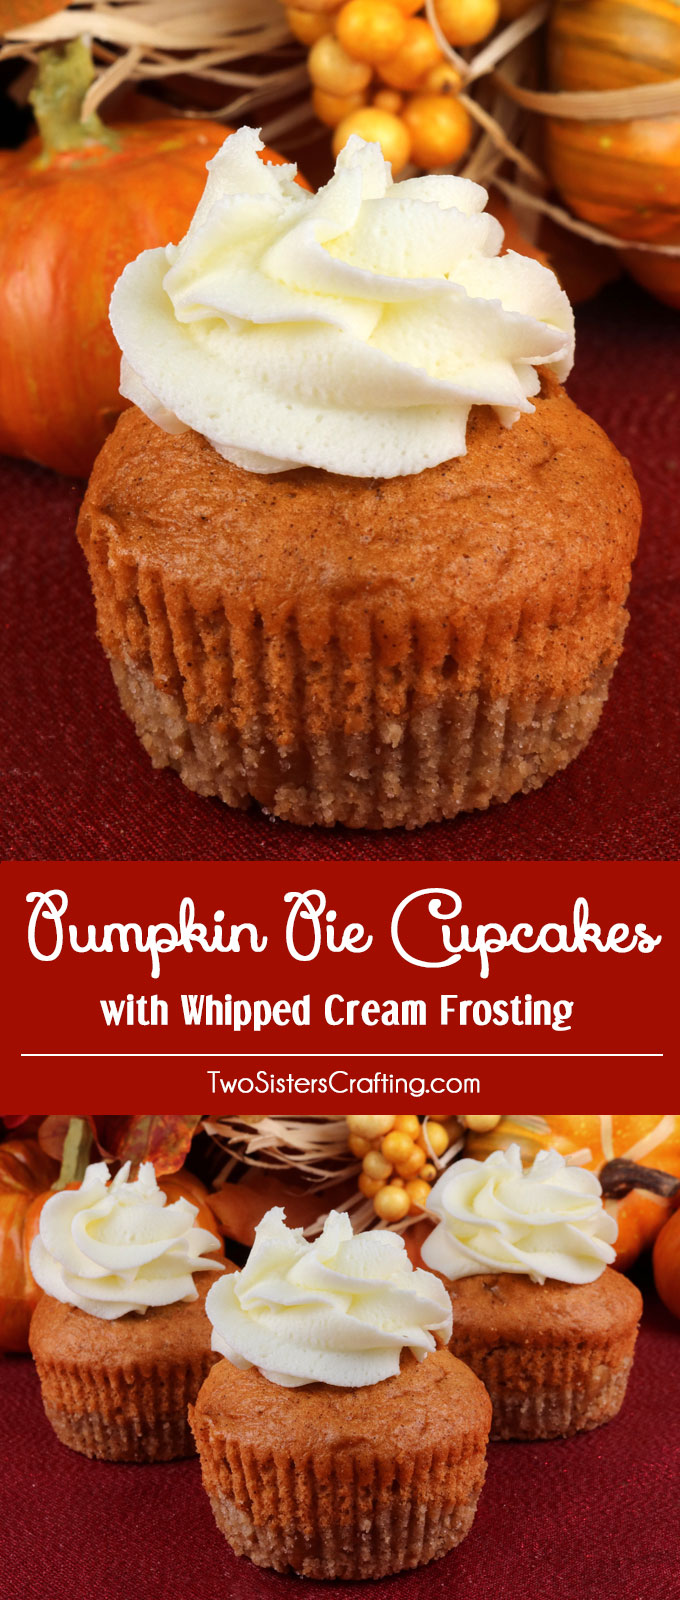 Pumpkin Pie Cupcakes, by Two Sisters